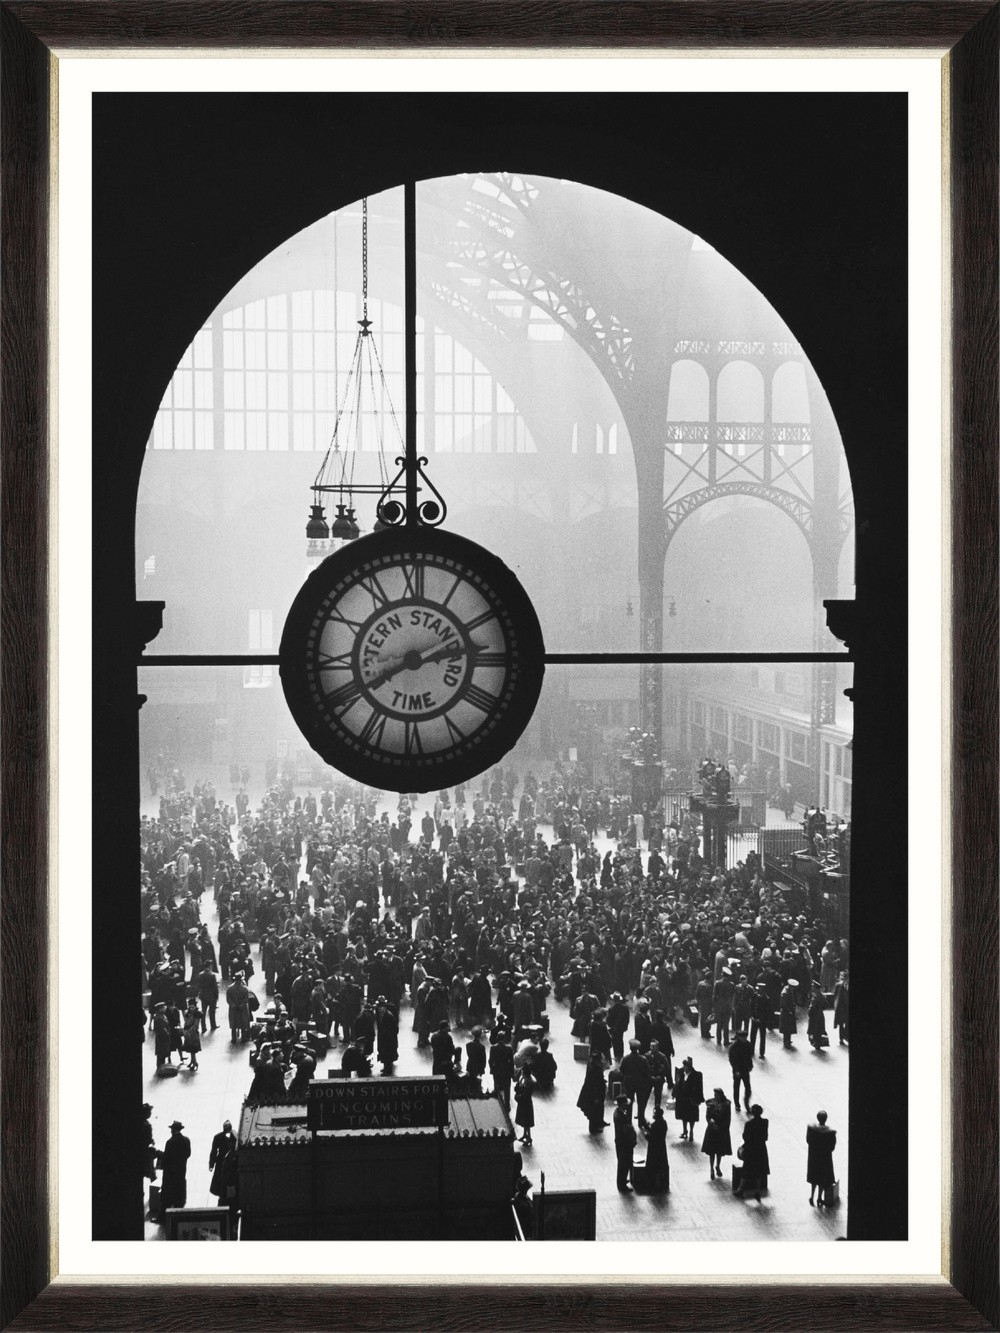 Tablou Framed Art Penn Station imagine